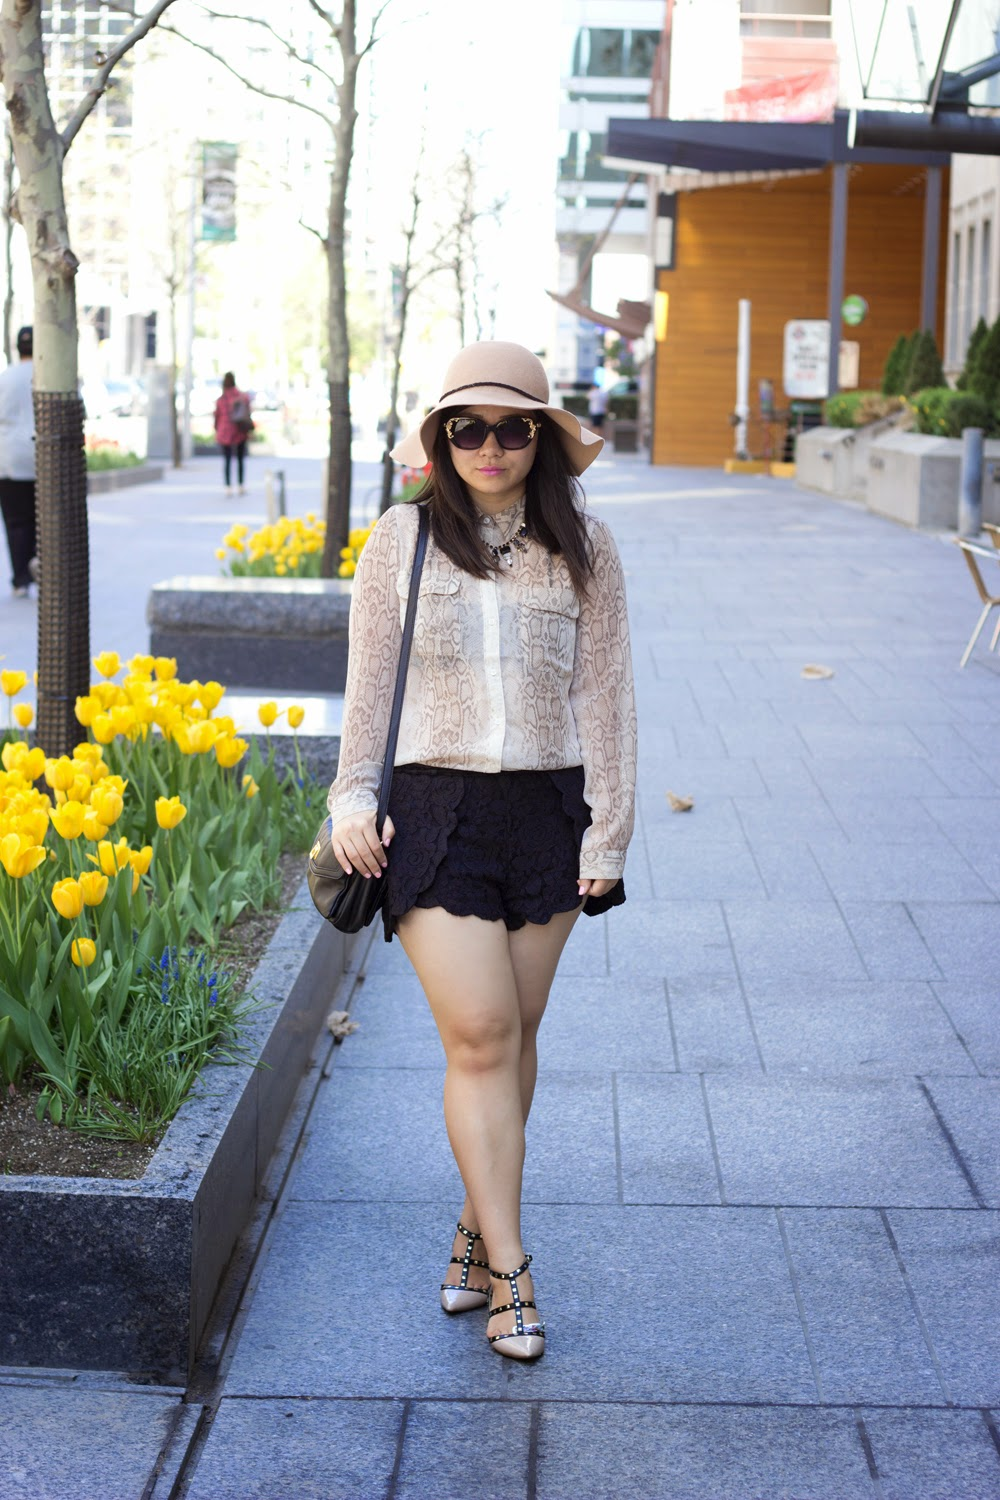 Floppy-Hat, A-J-Morgan-Sun-glasses, Snake-skin-Print-Blouse, Black-Lace-Shorts